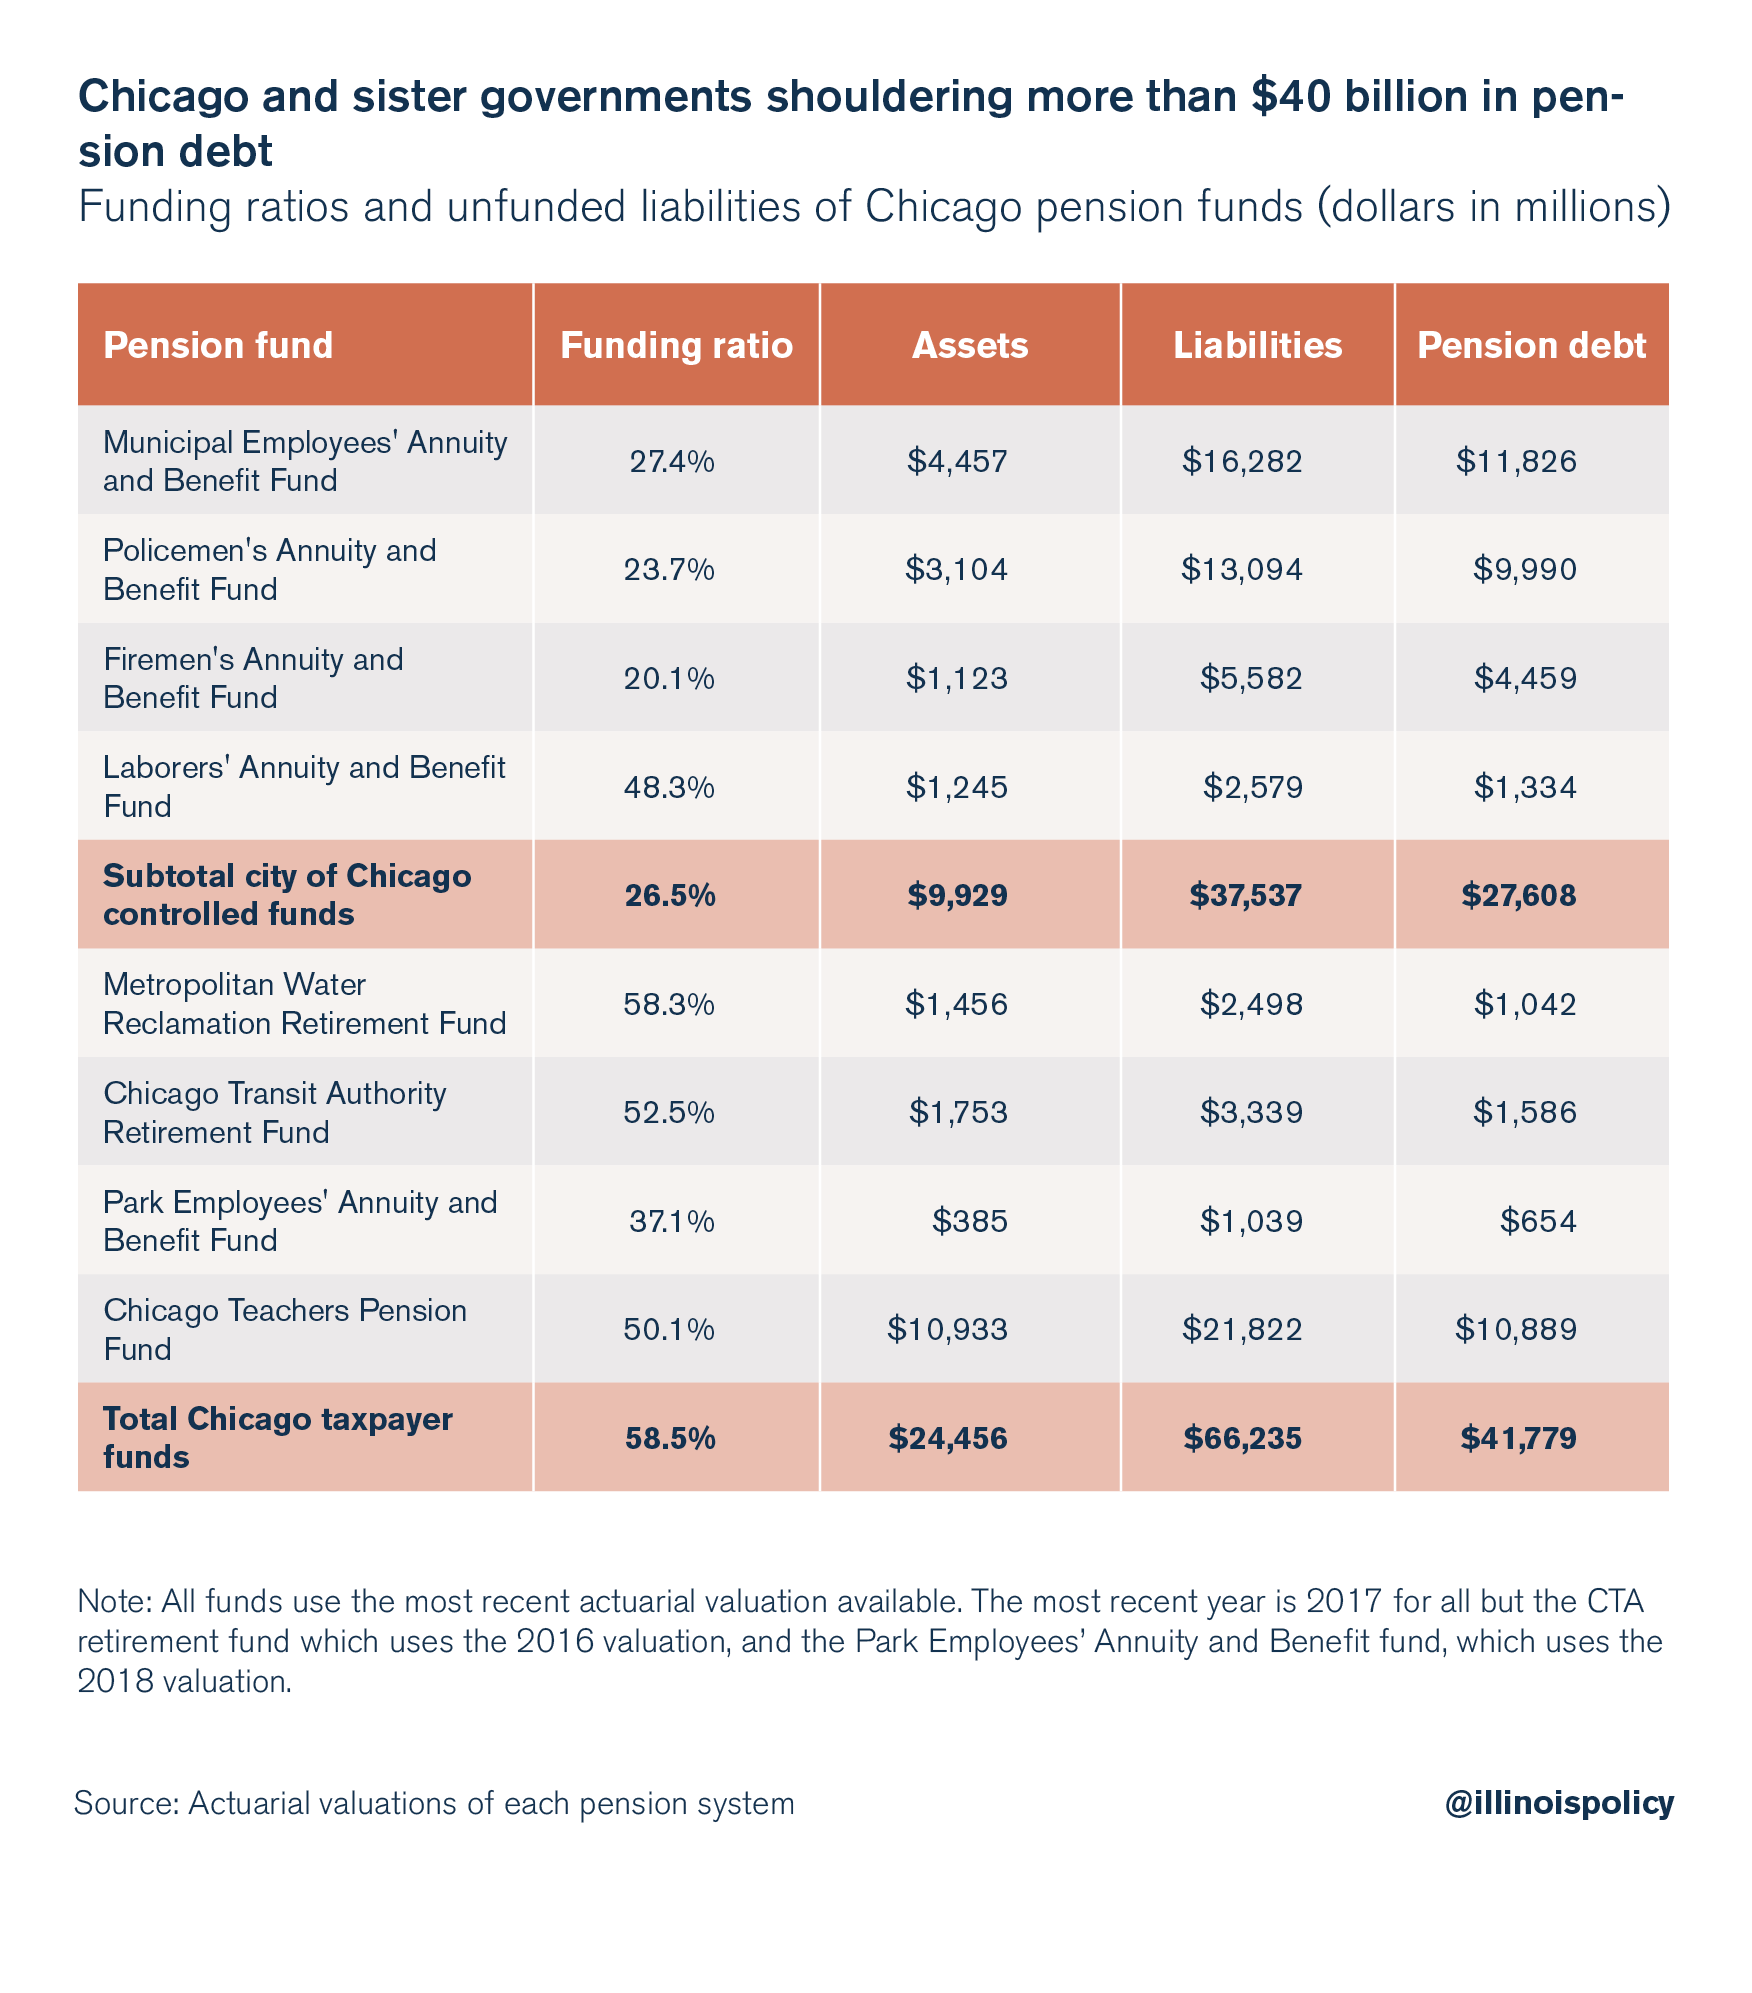 Chicago and sister governments shouldering more than $40 billion in pension debt